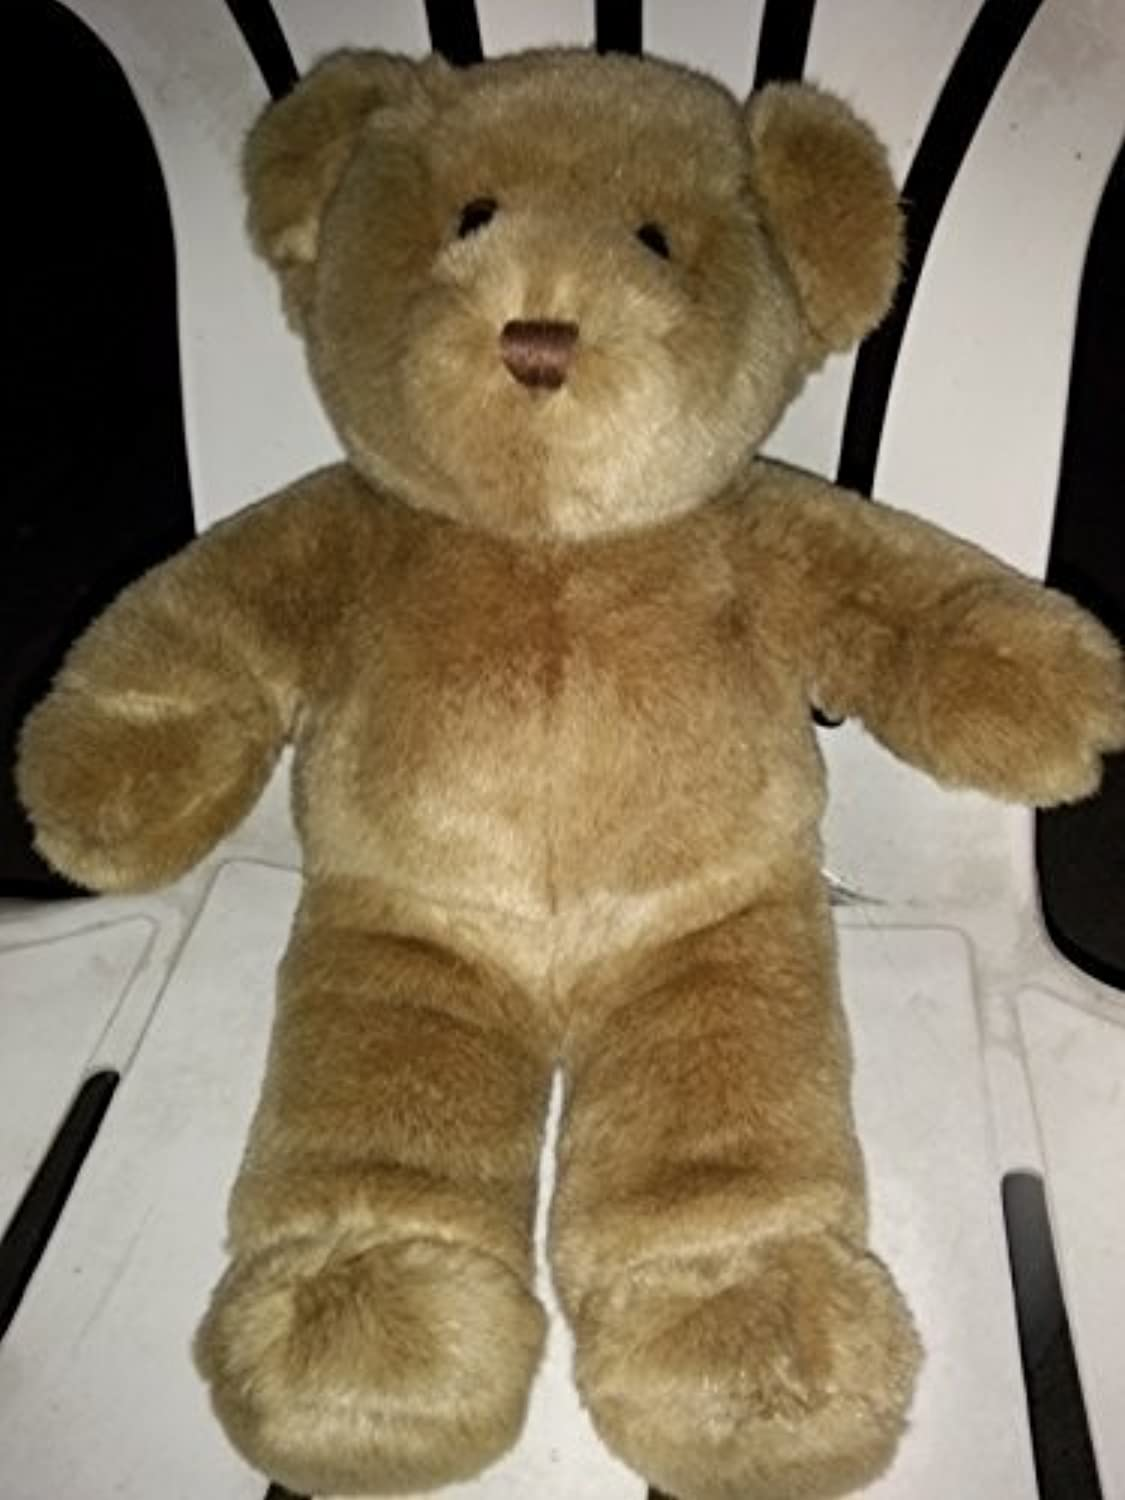 BuildABear Workshop Brown Teddy Bear Plush Stuffed Animal by BuildABear Workshop